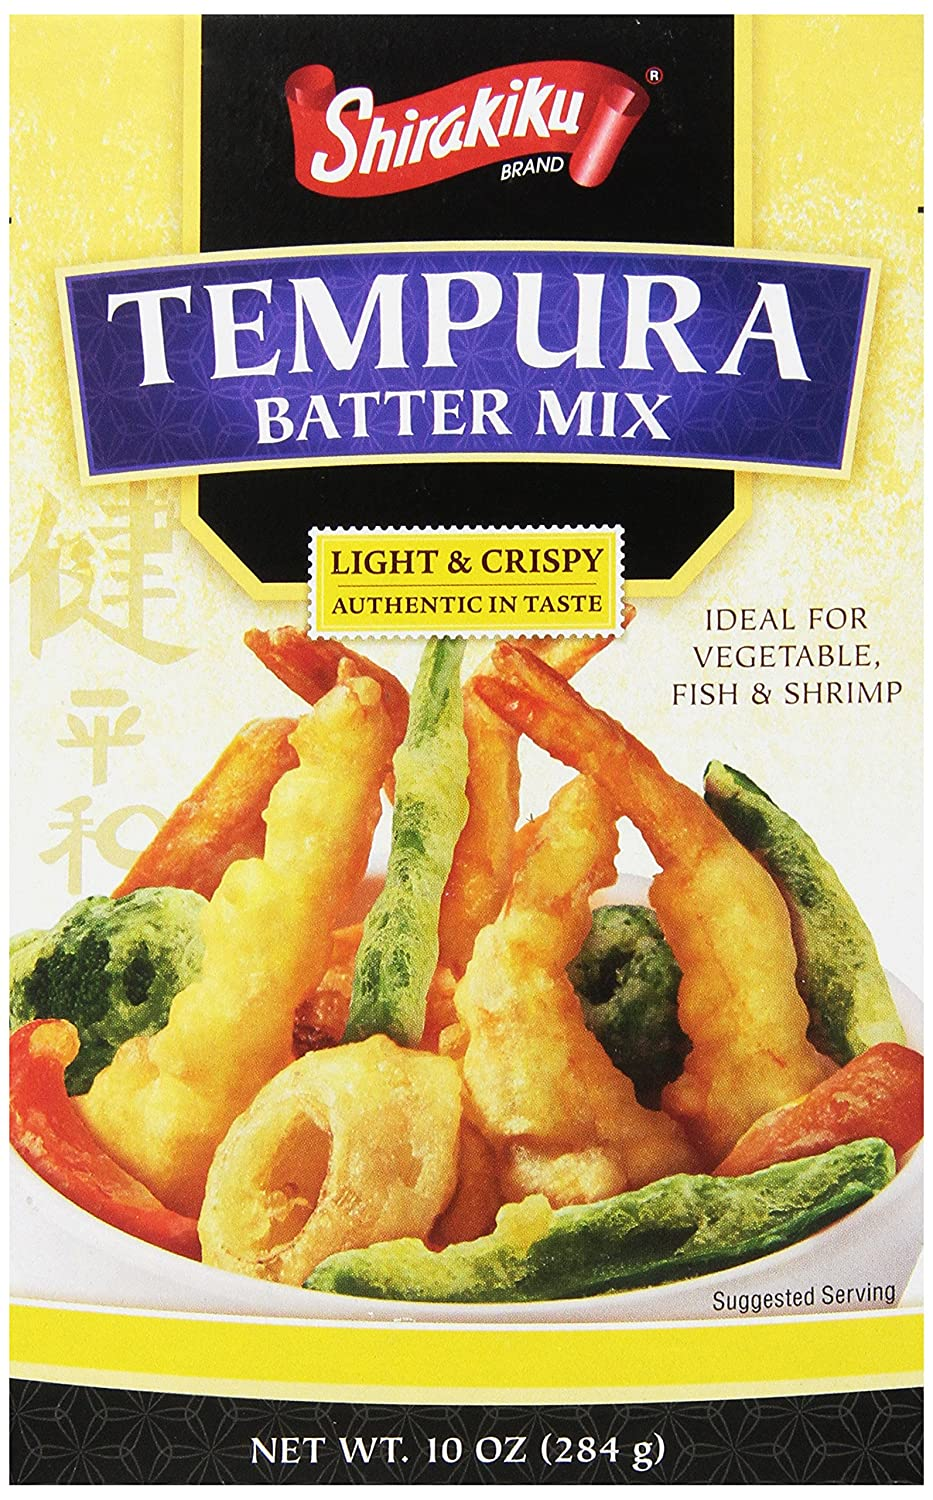 Shirakiku Brand - Tempura Batter Mix (Net Wt  10 Oz